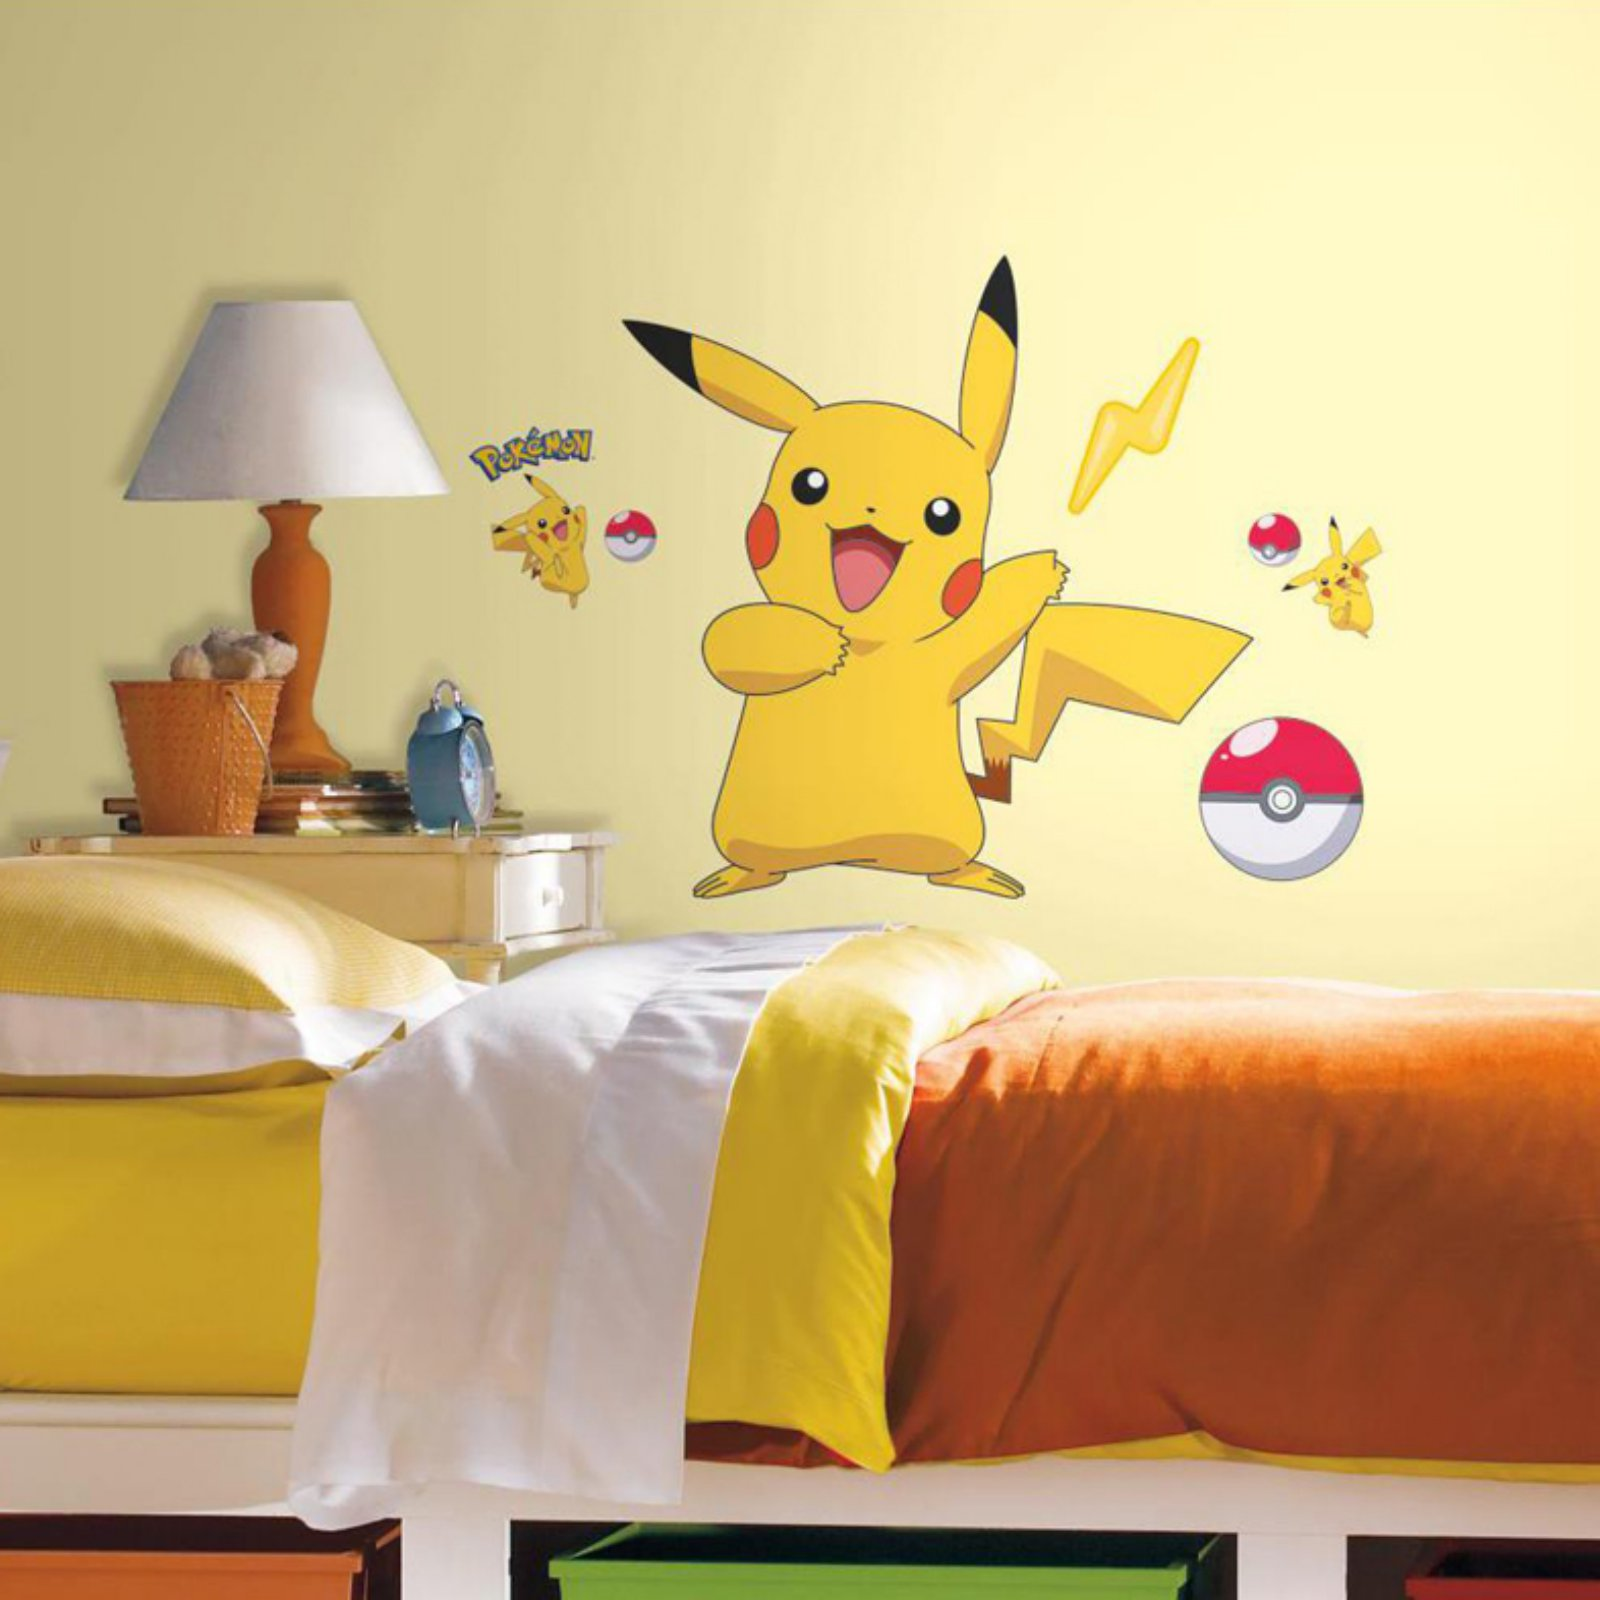 Pokemon Pikachu Peel and Stick Wall Decals - Walmart.com